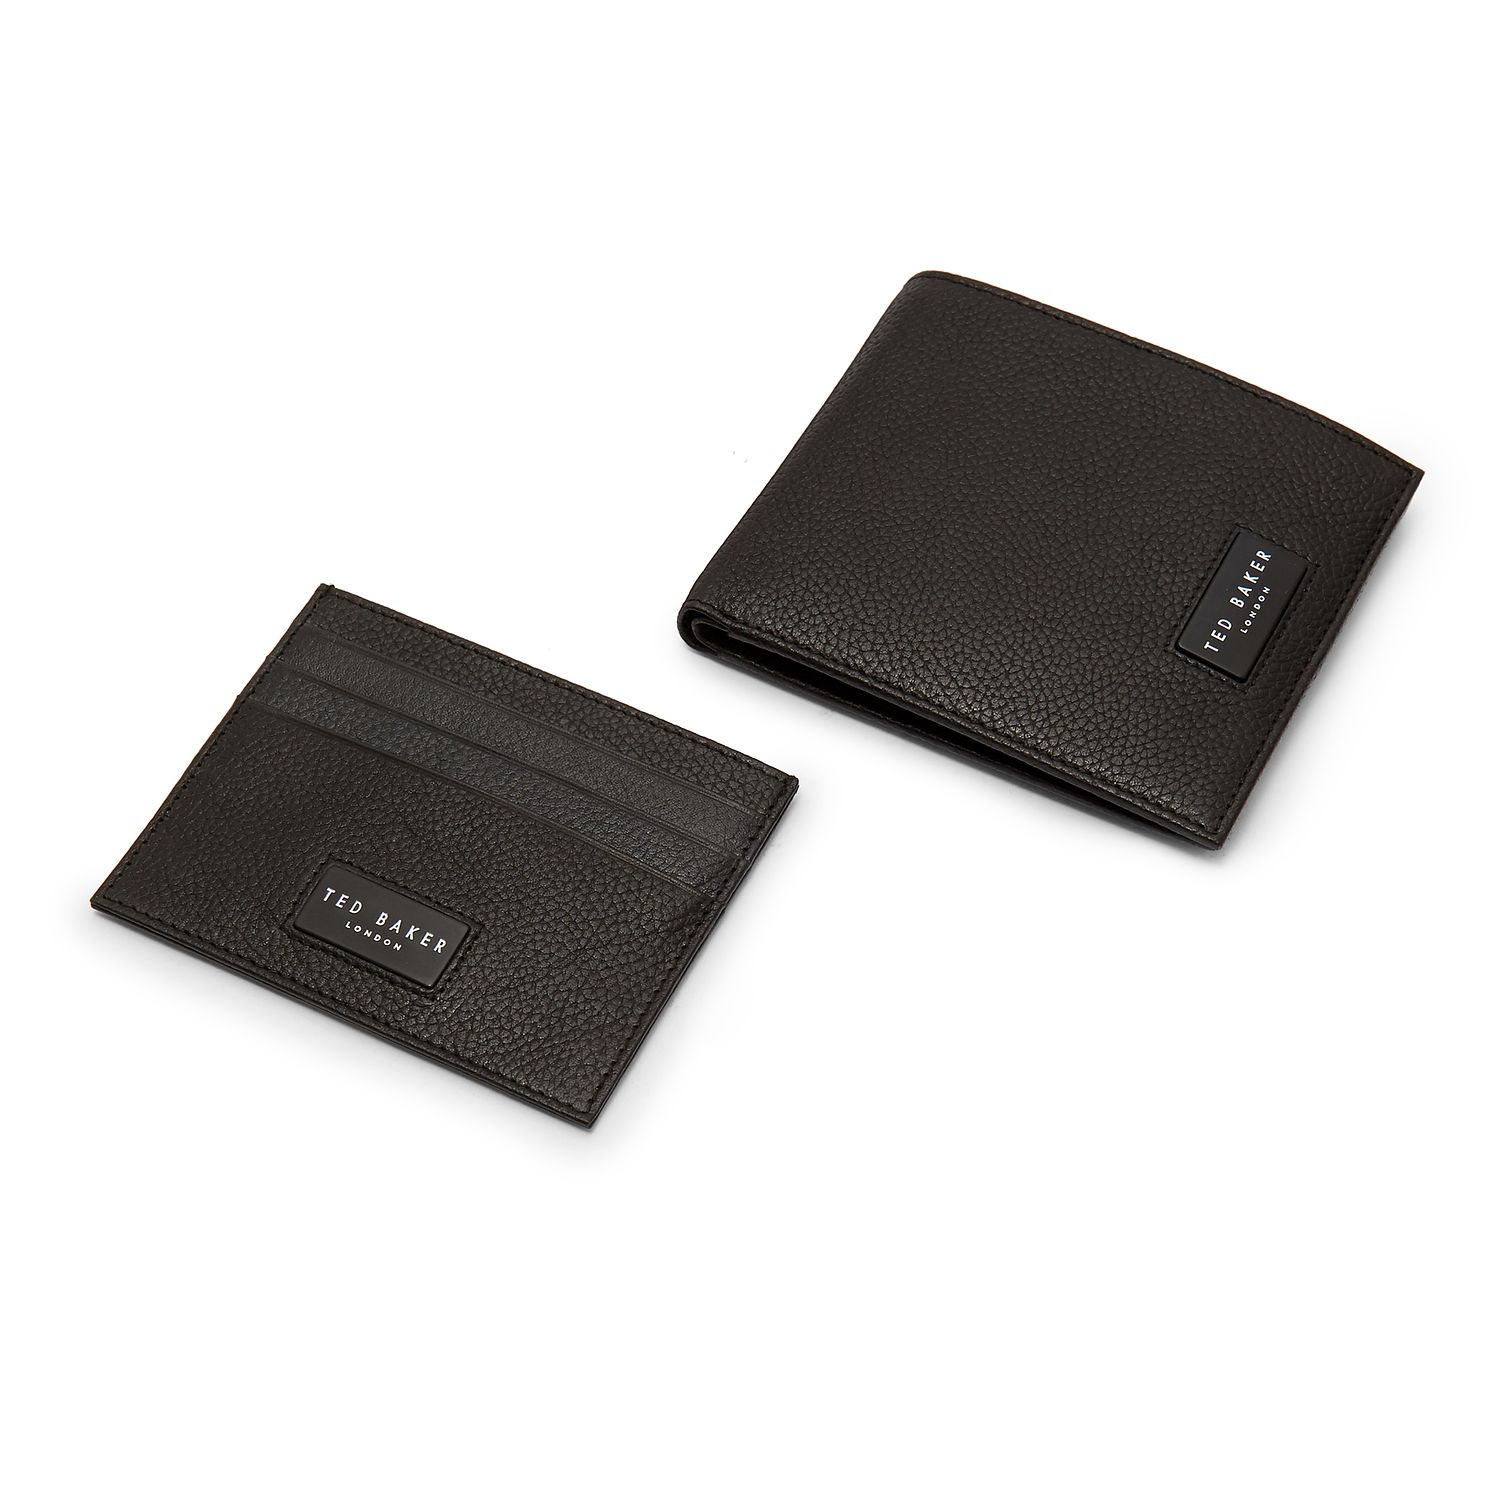 Ted Baker Grenada Black Leather Wallet & Cardholder Gift Set - Product number 3104478